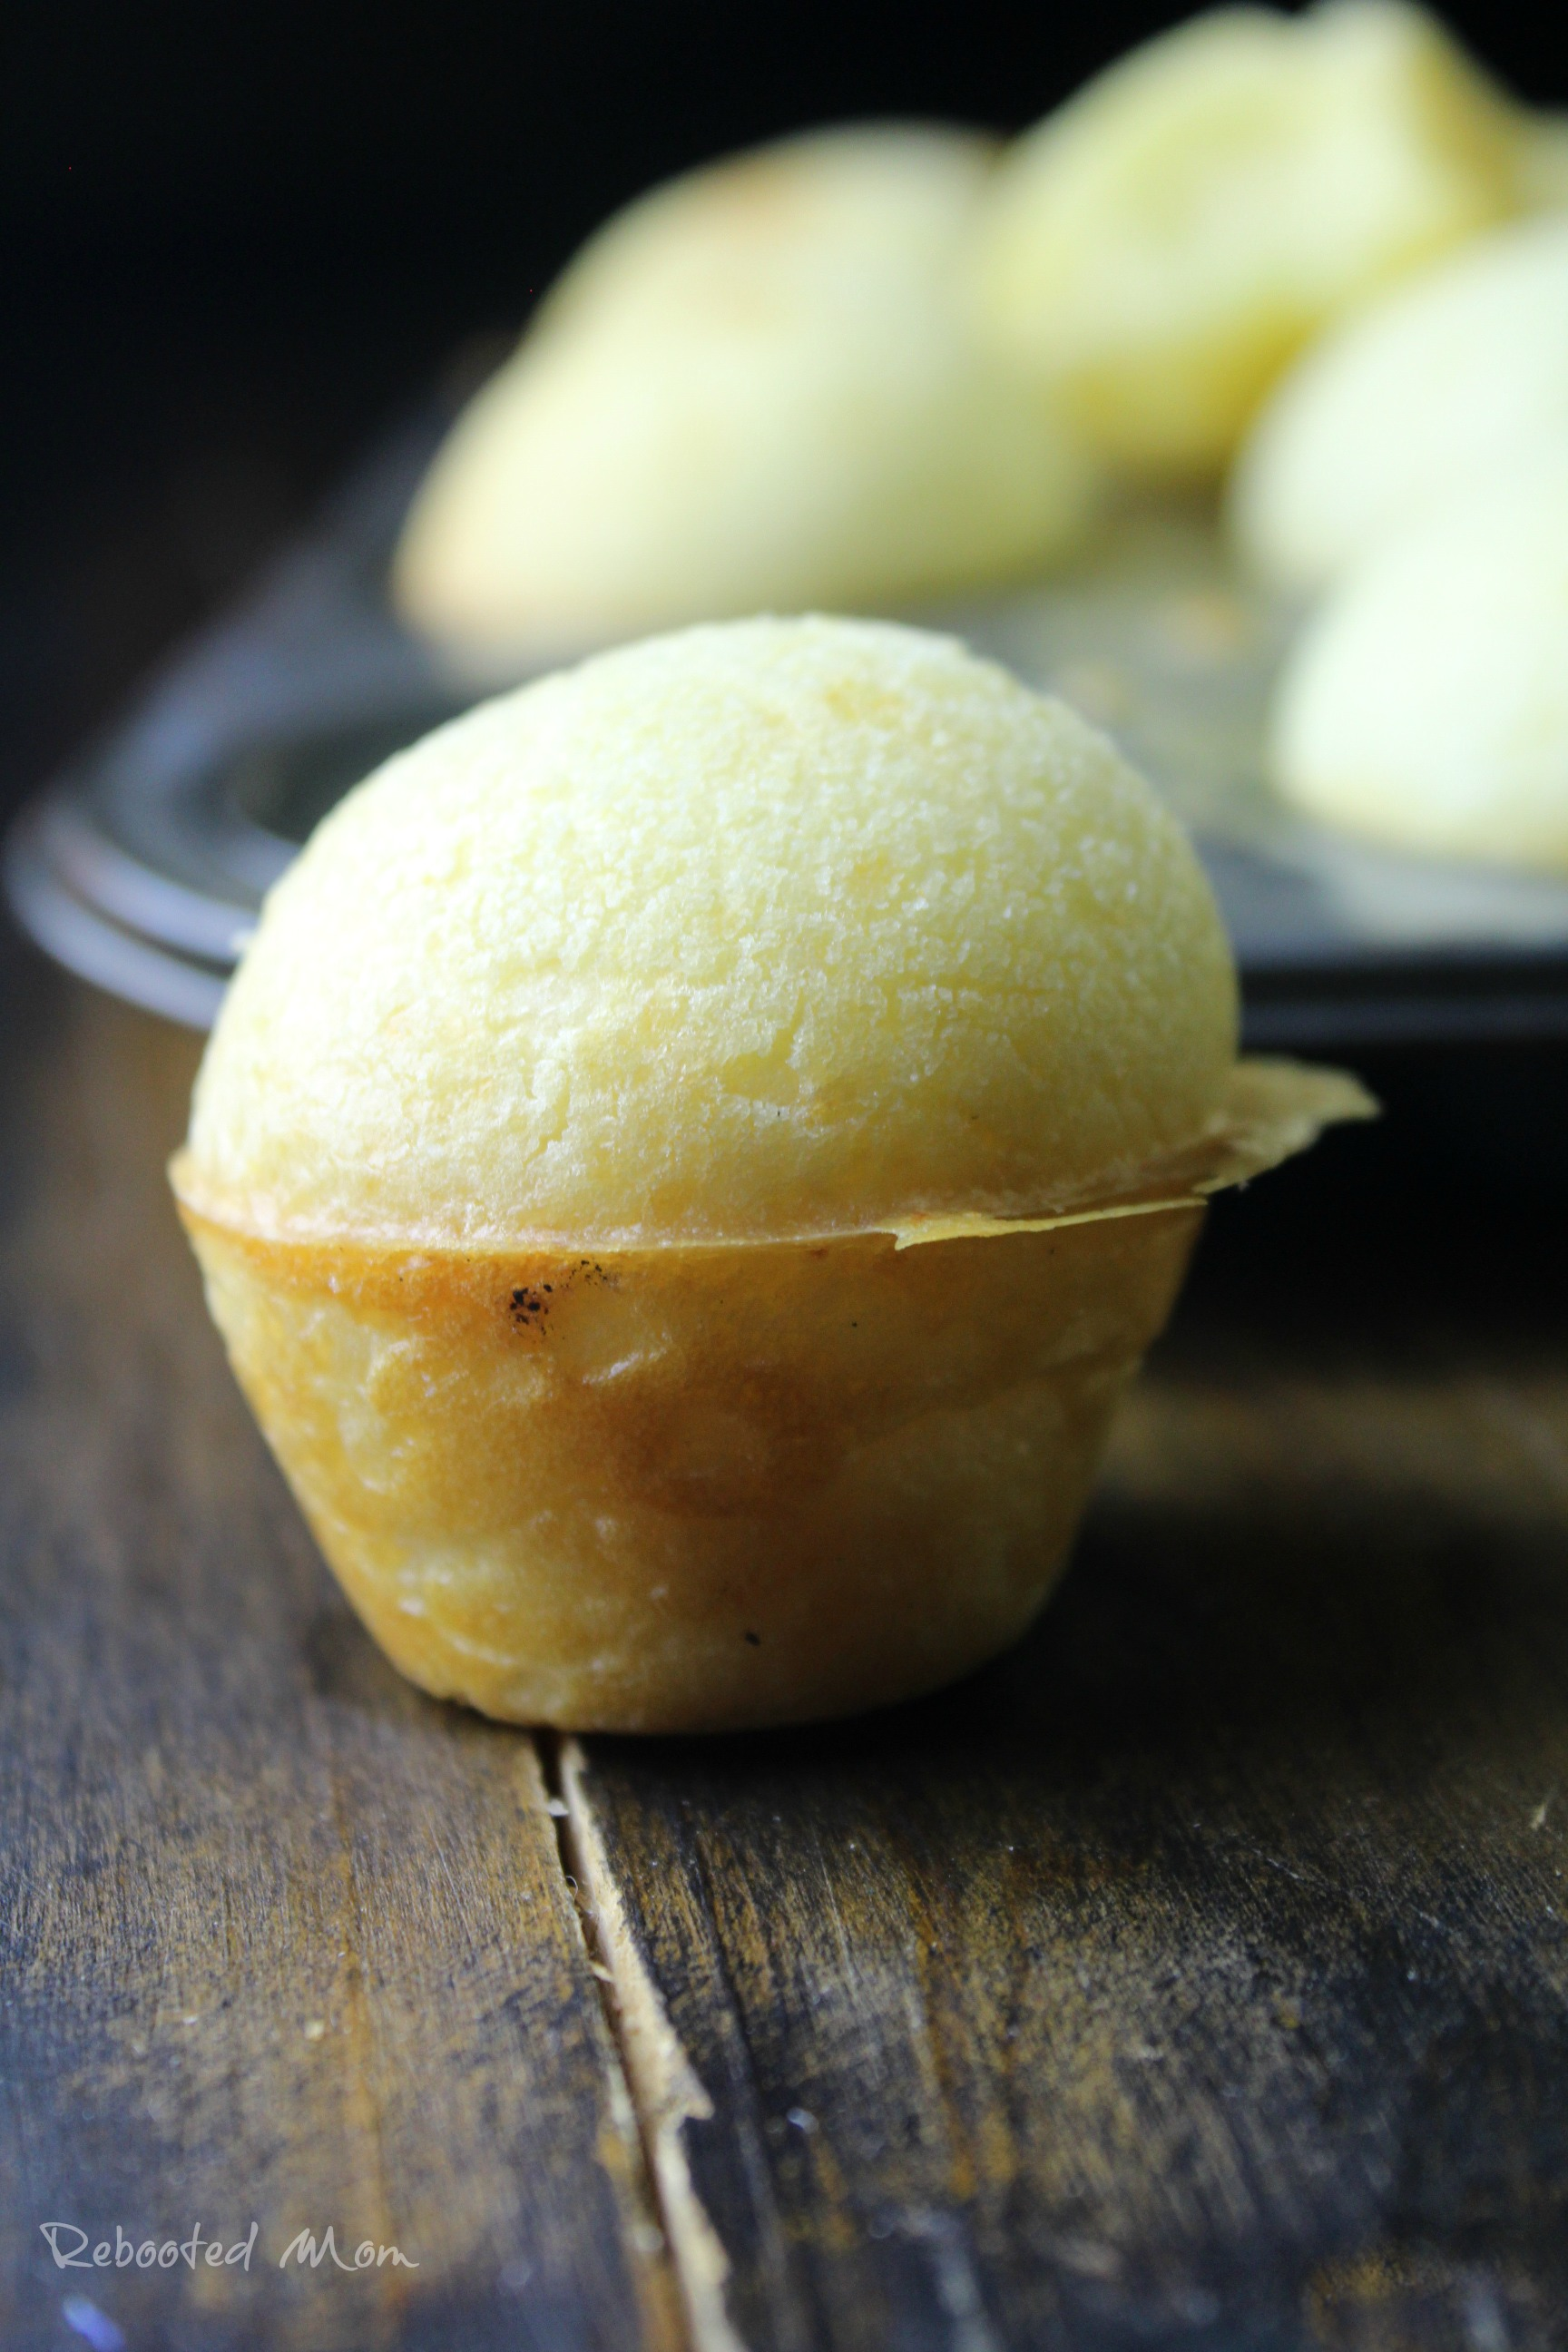 Brazilian Cheese Puffs (also known as Pao de Quiejo) are beautiful cheesy gems that are gluten-free, grain-free, and easy to make with simple ingredients!